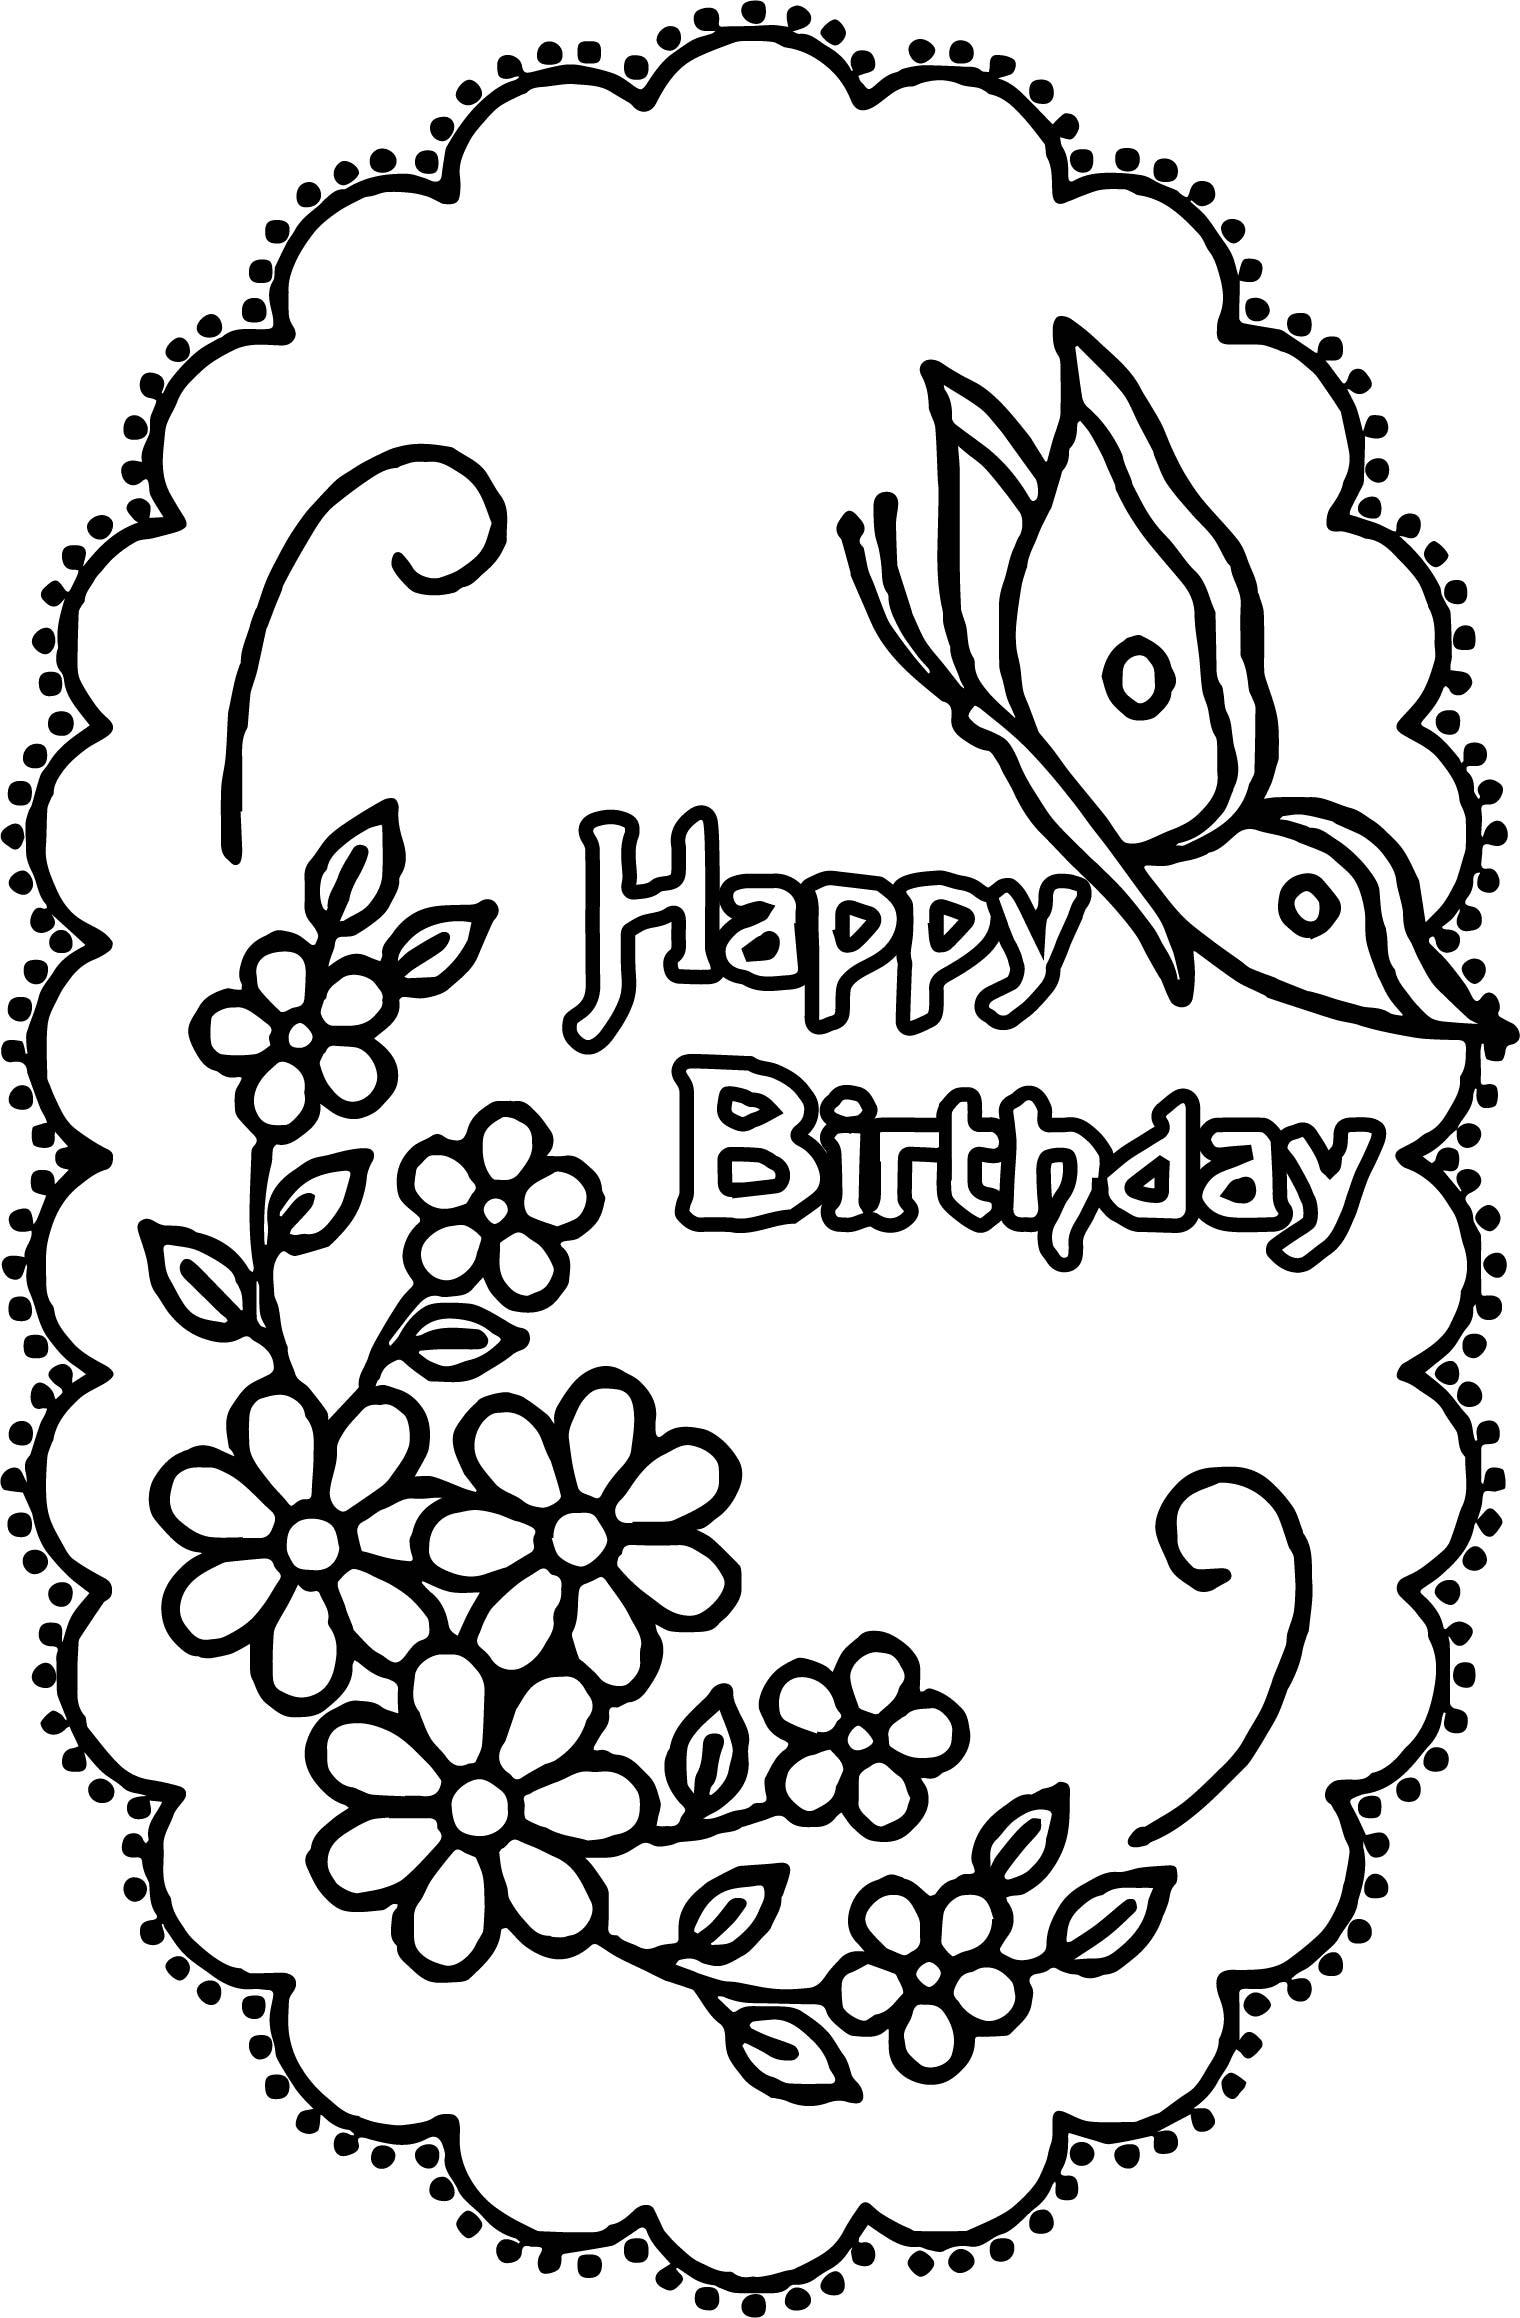 Happy Birthday Adult Coloring Pages at GetColorings